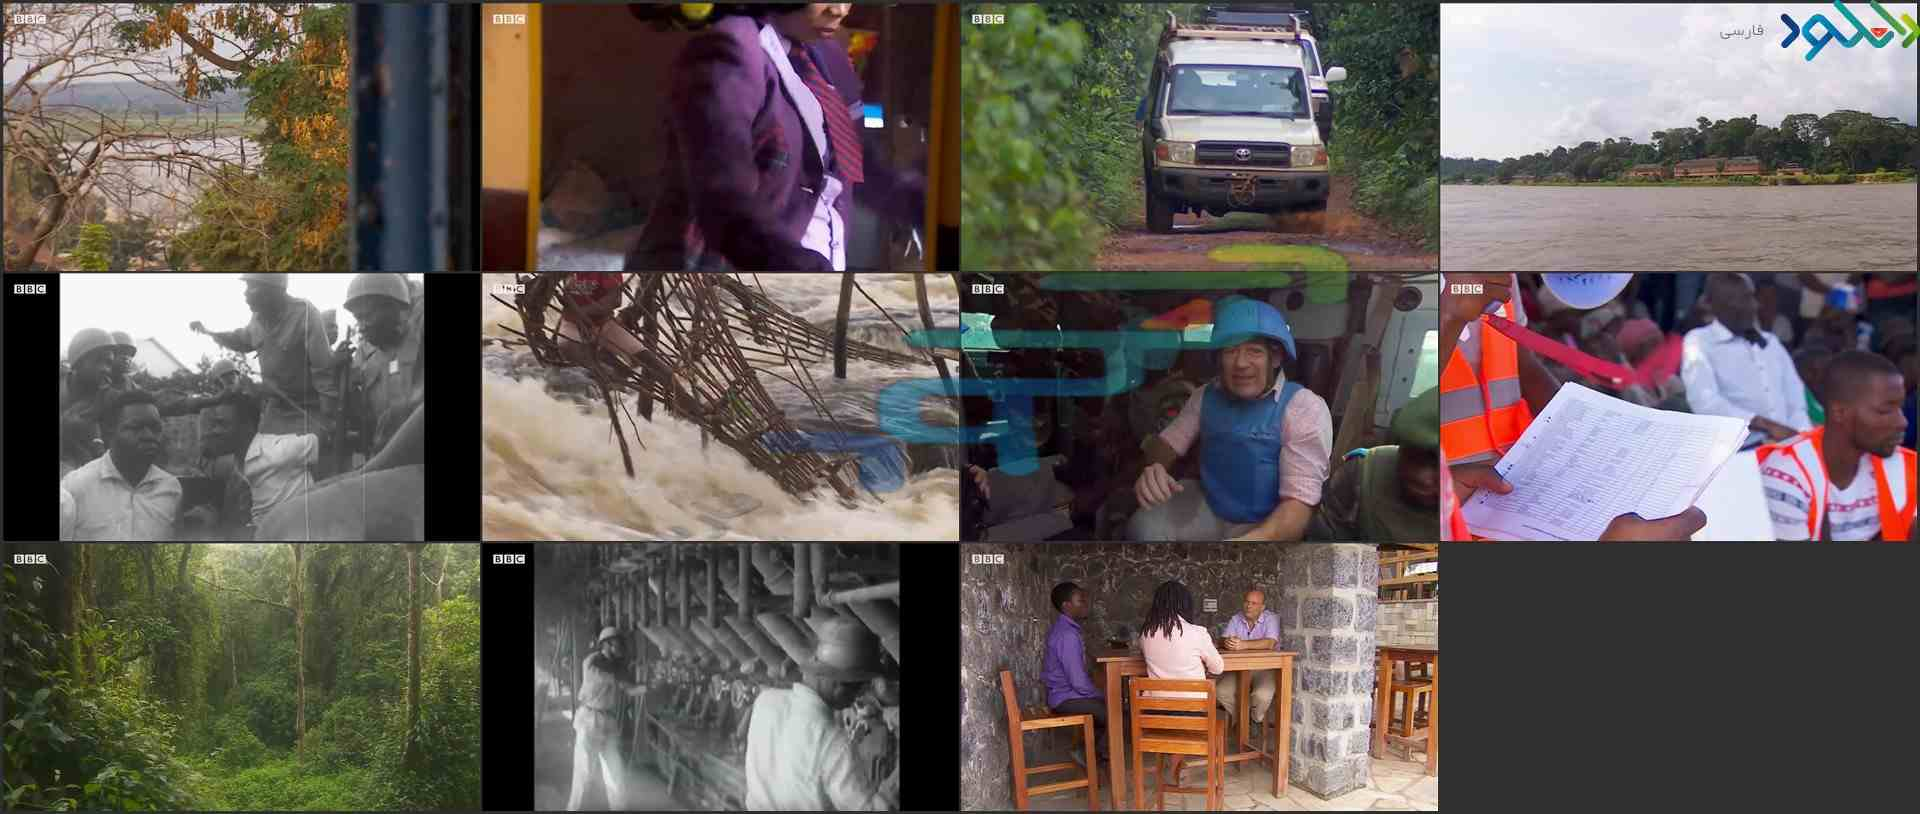 www.download.ir.Congo.-.A.journey.to.the.heart.of.Africa.-.Full.documentary.mp4